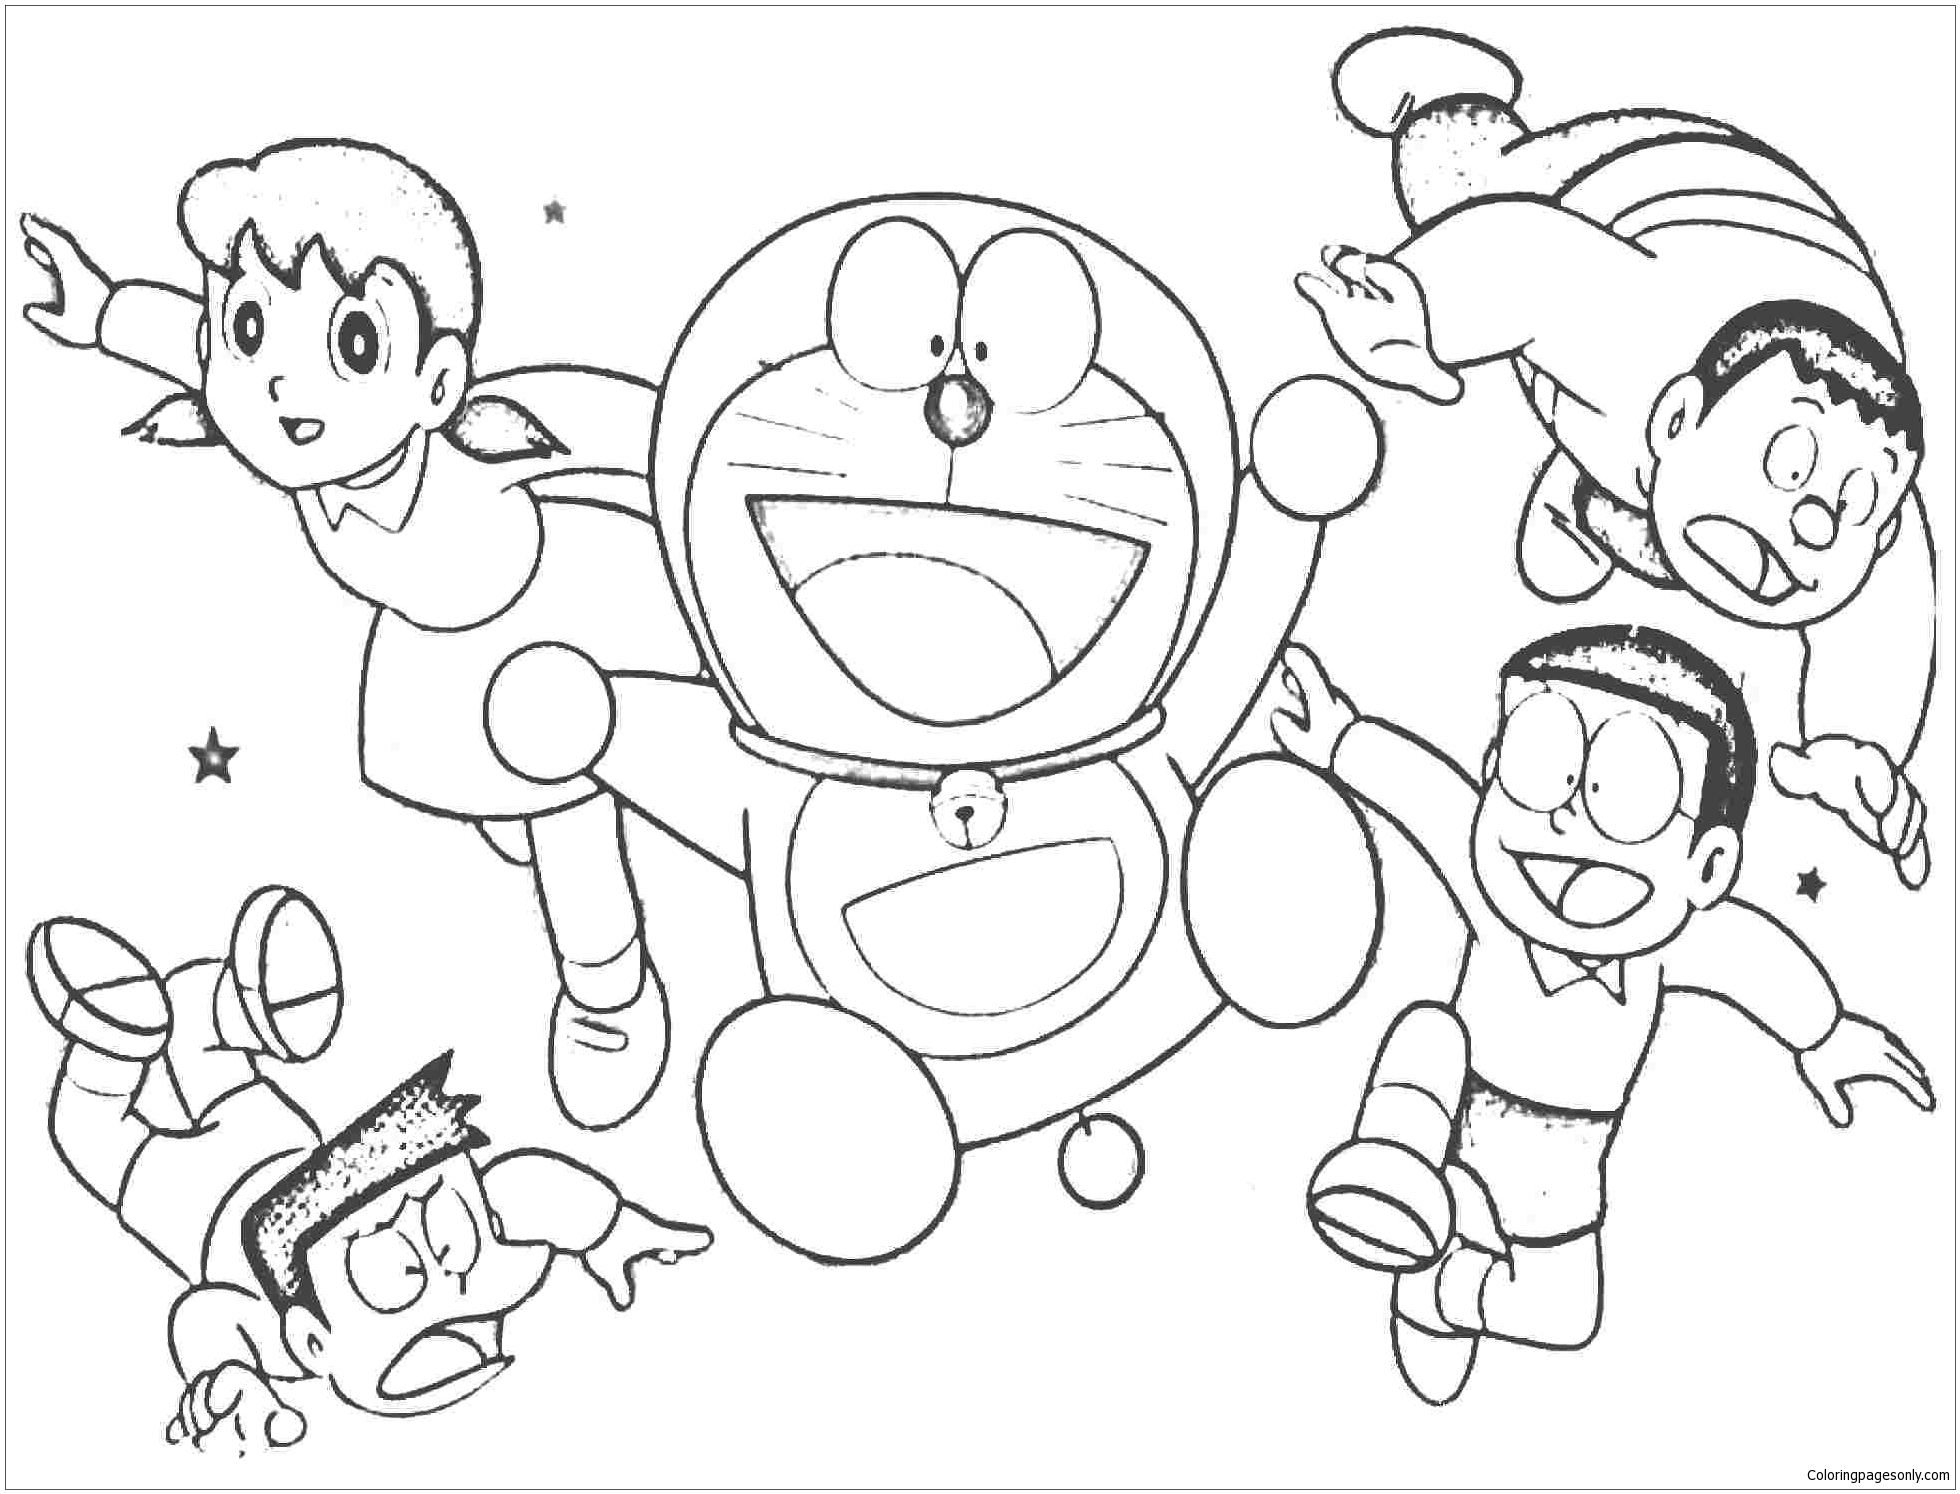 1960x1494 Cheerful doraemon with his friends Coloring Page